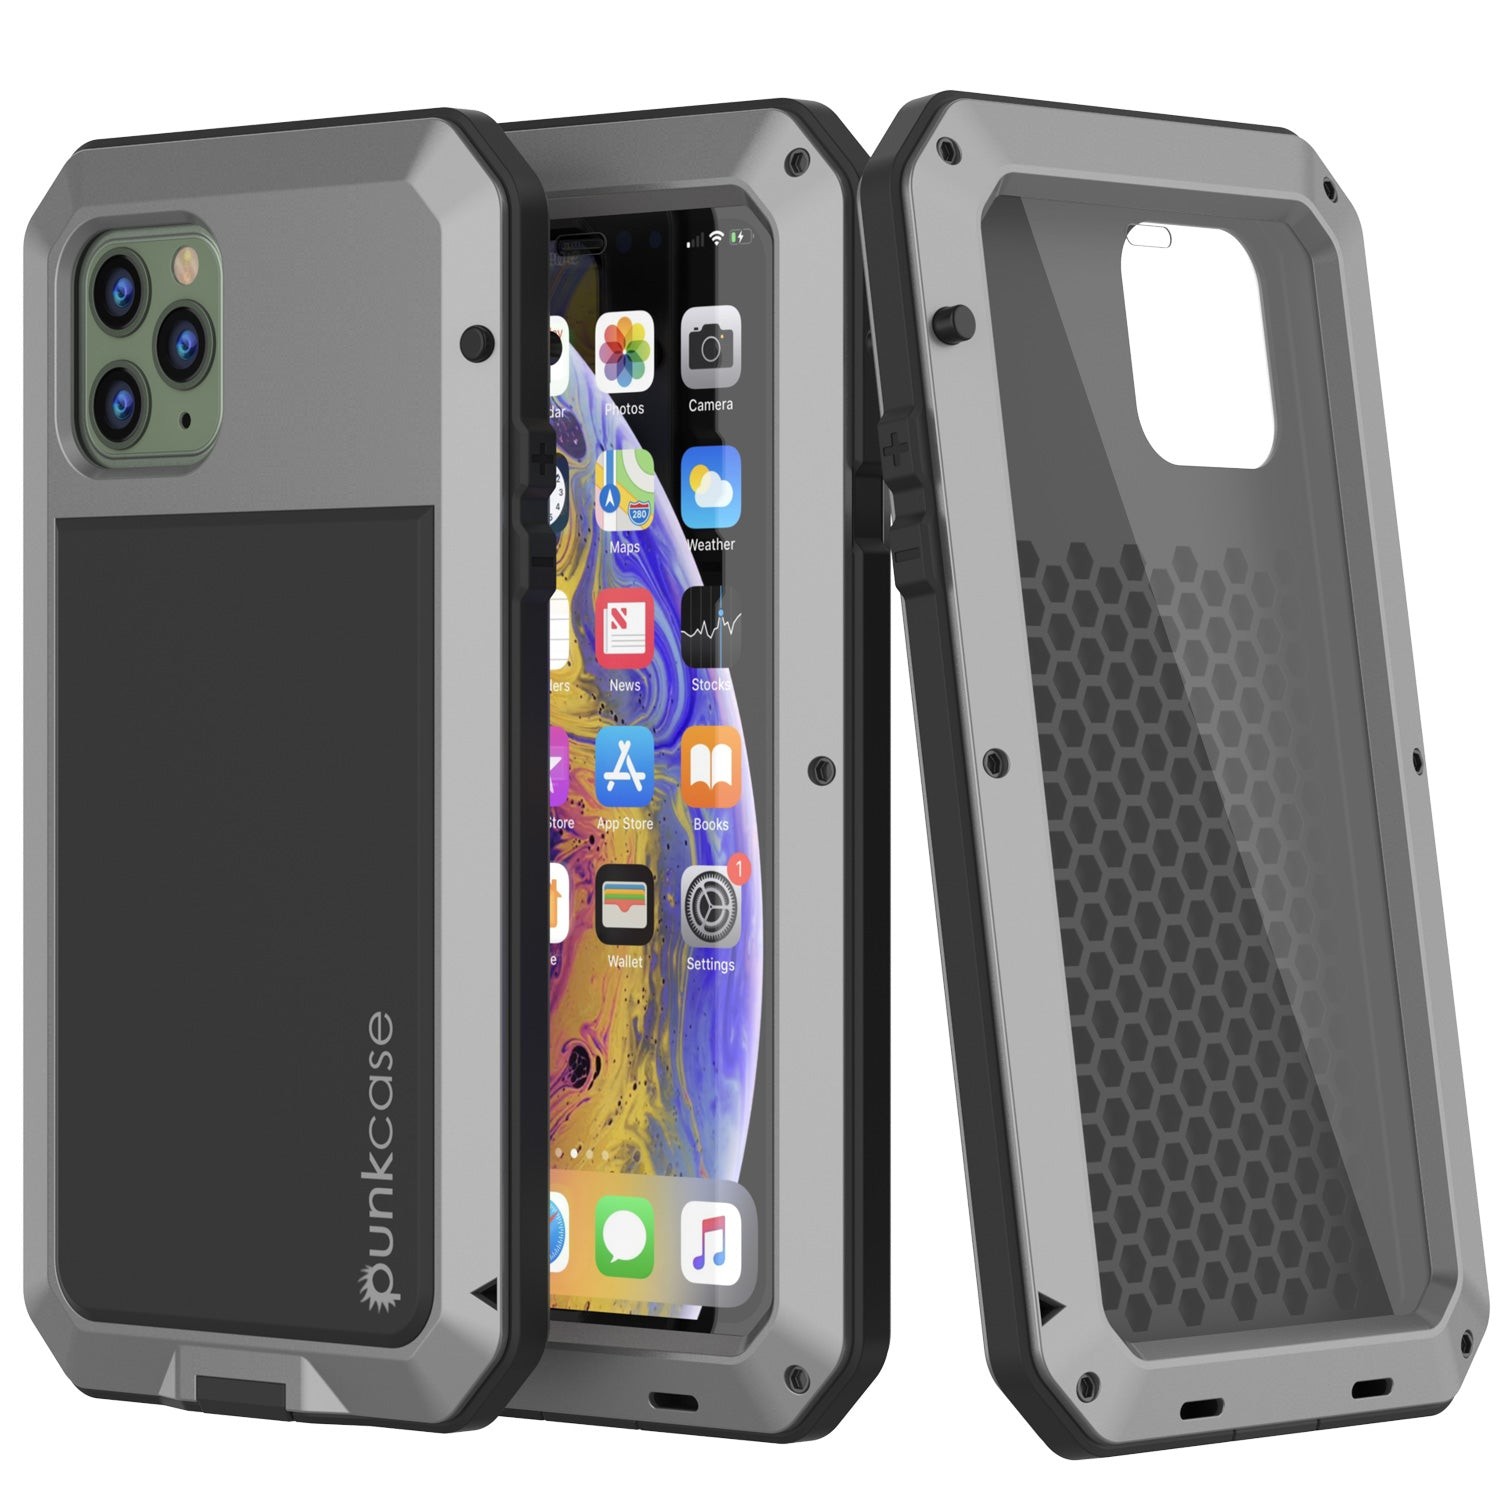 iPhone 11 Pro Max Metal Case, Heavy Duty Military Grade Armor Cover [shock proof] Full Body Hard [Silver]